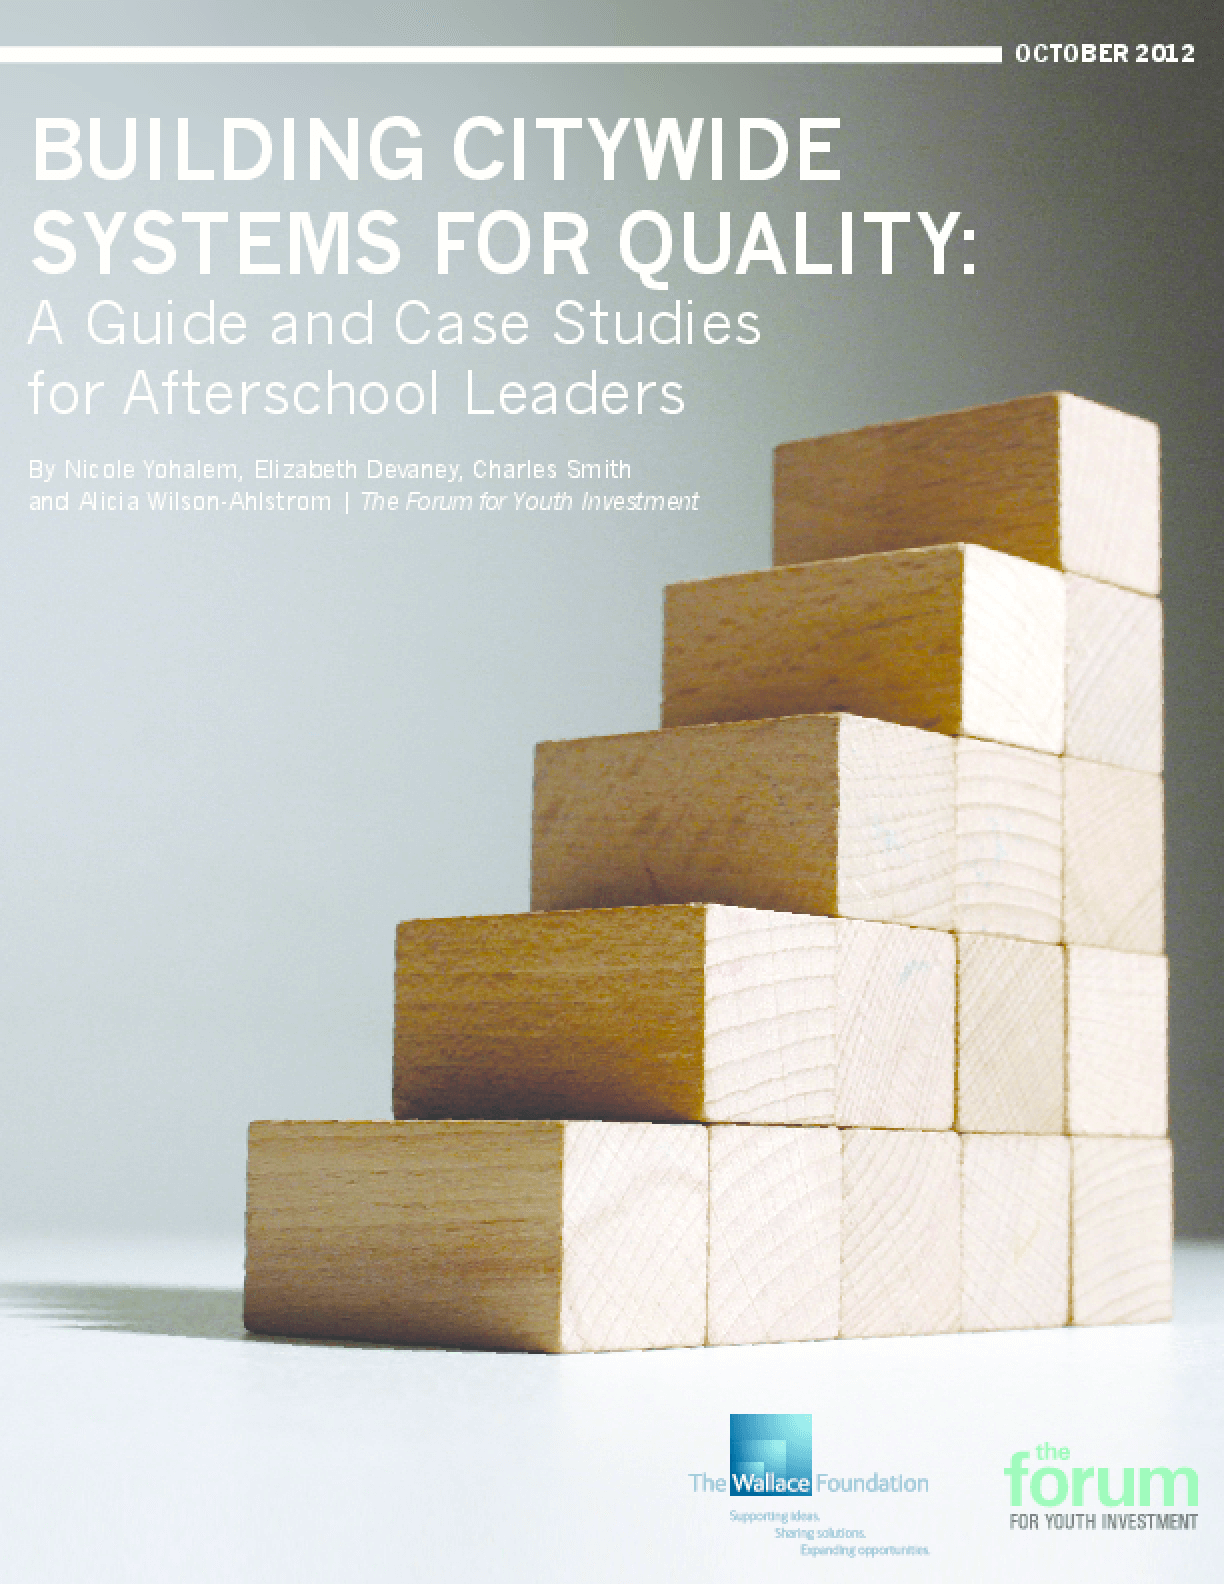 Building Citywide Systems for Quality: A Guide and Case Studies for Afterschool Leaders